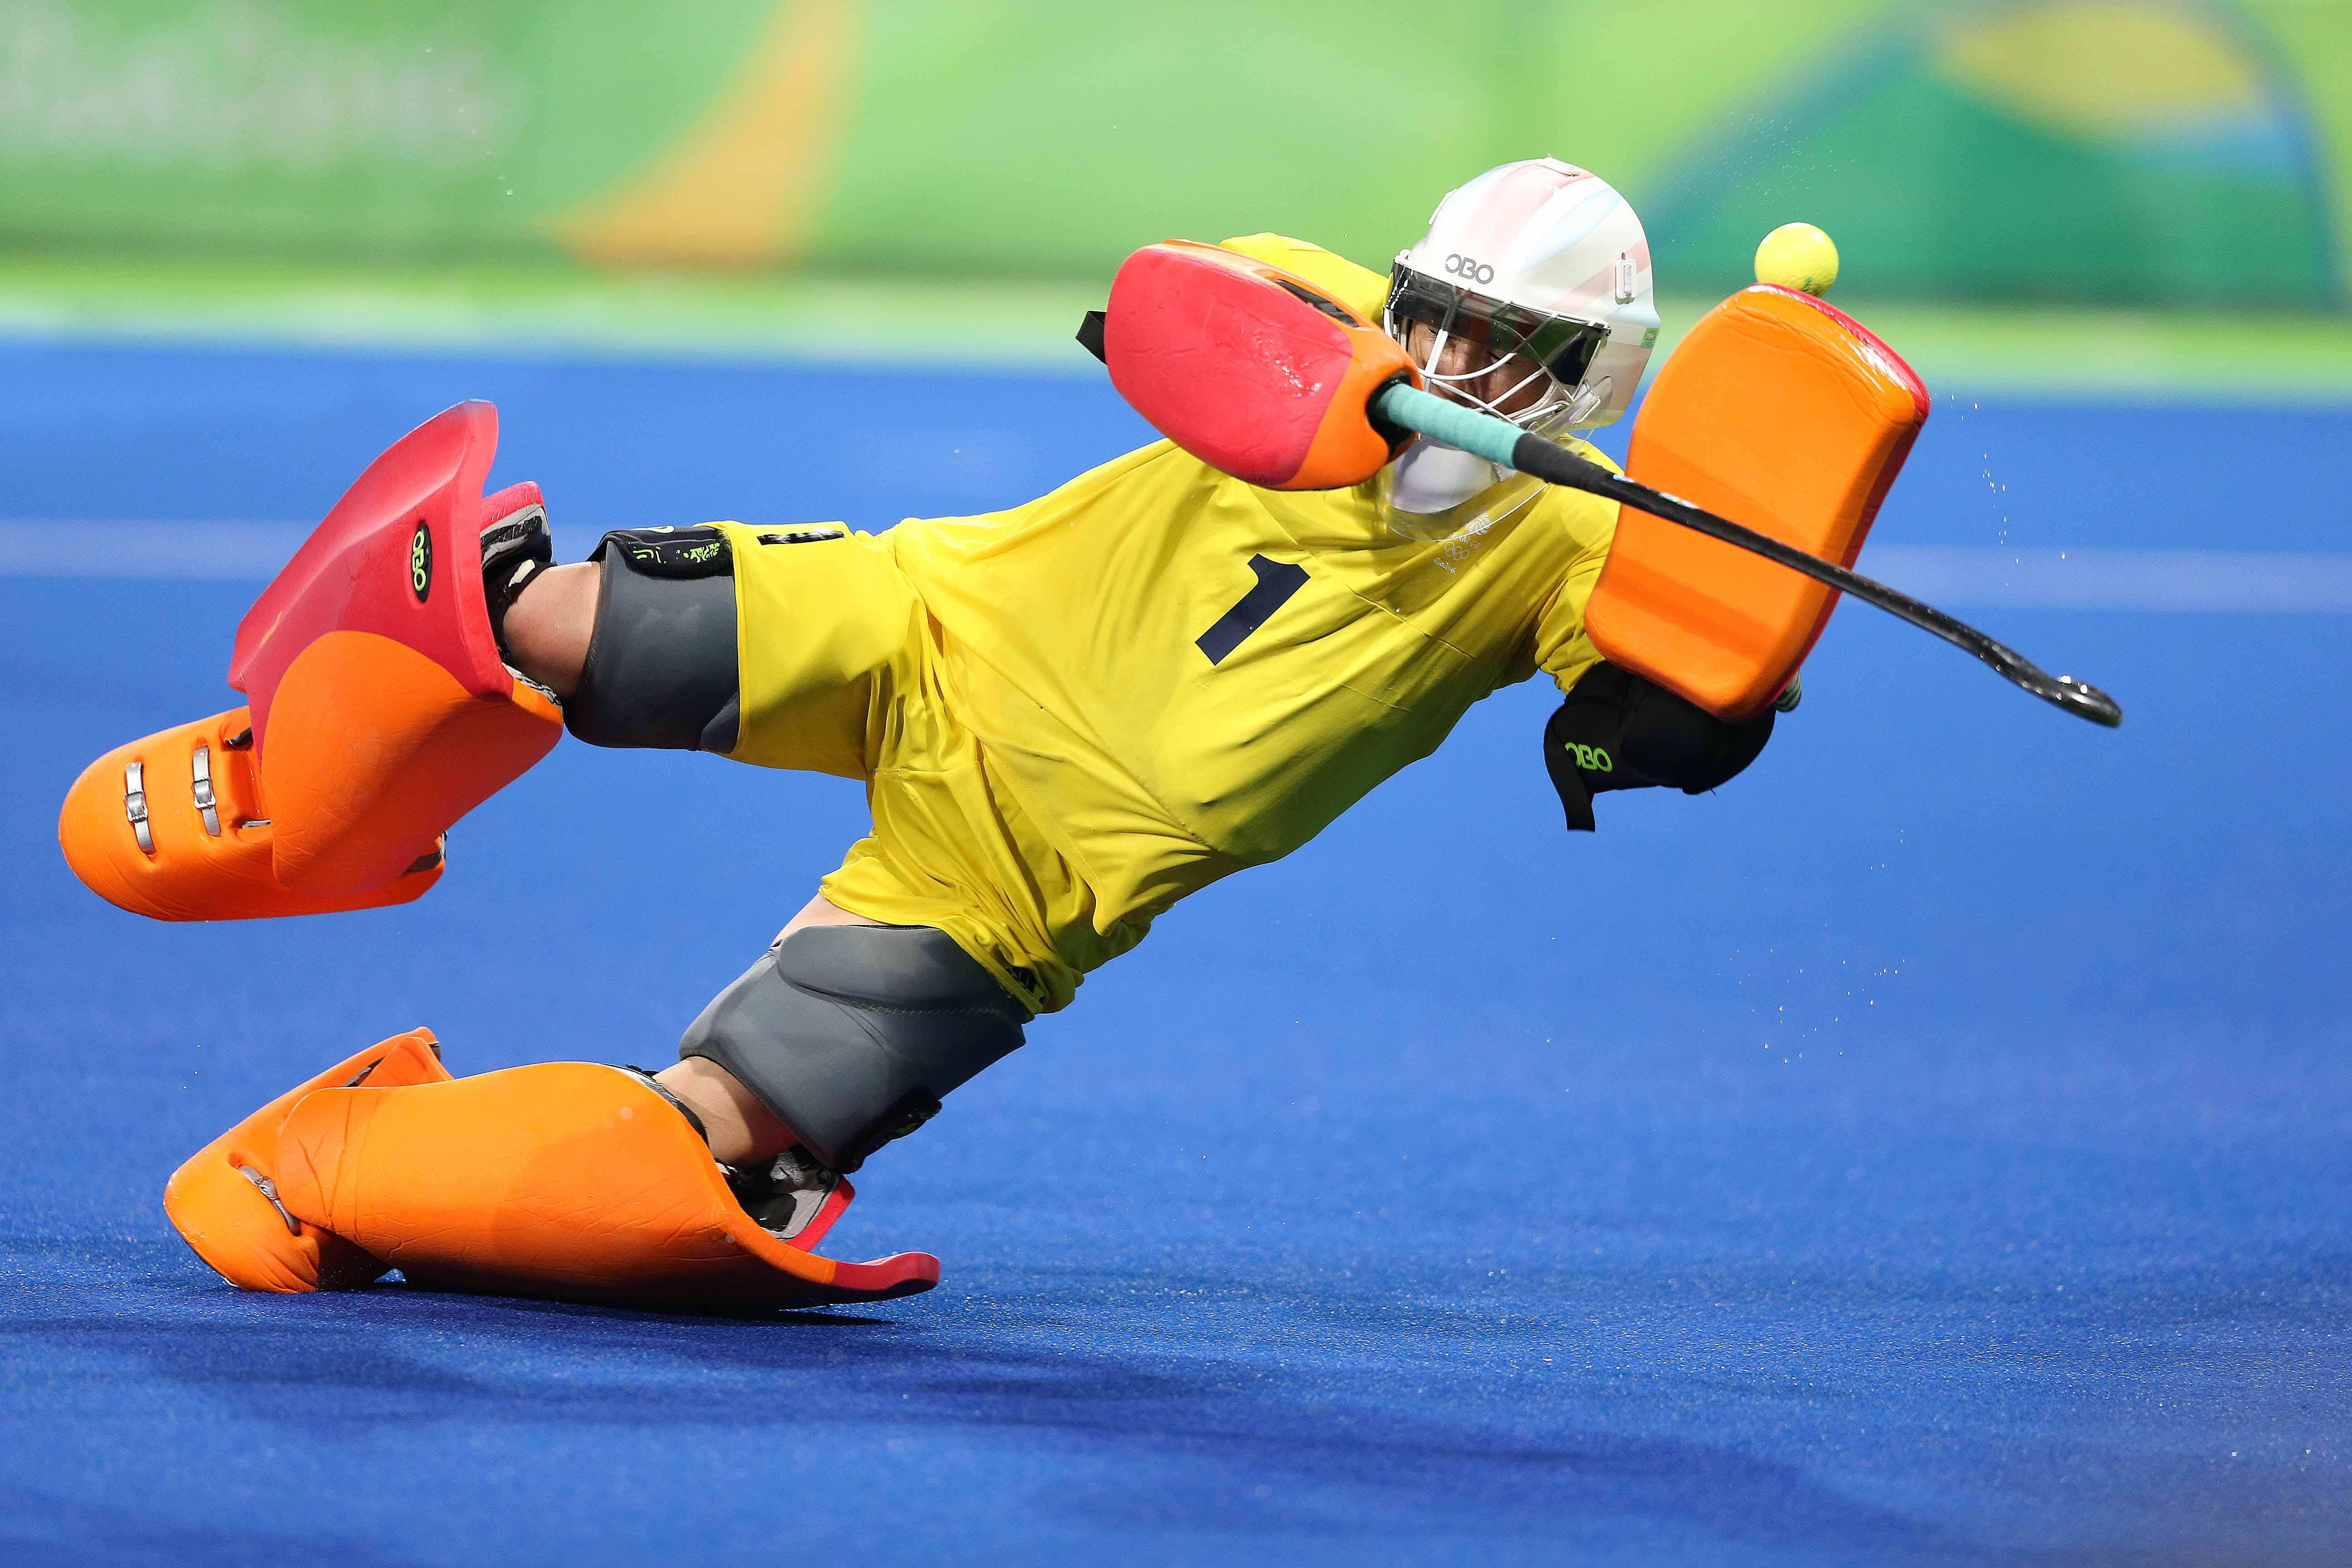 Goalkeeper and Olympics 2014 gold medallist Maddie Hinch returns in net after her impressive performances